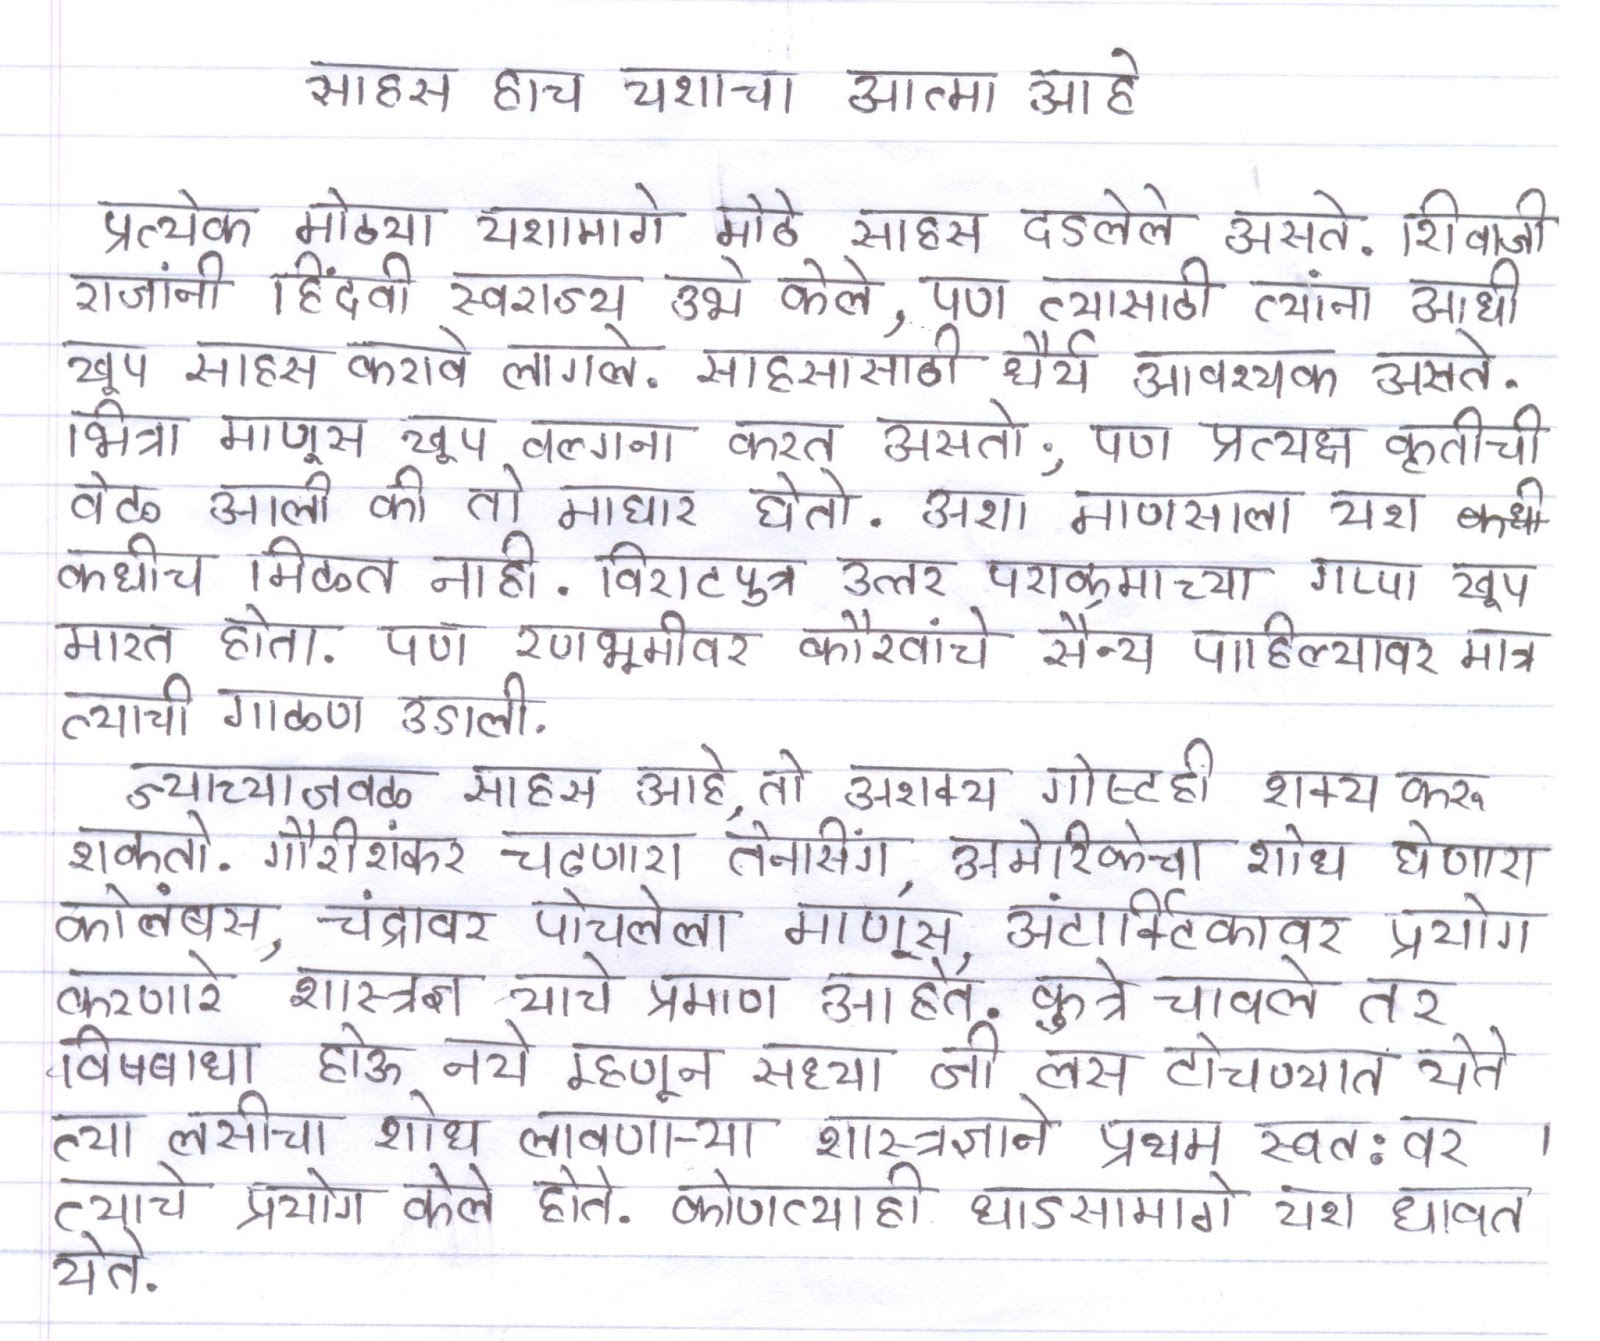 importance of nature essay in marathi language 91 121 113 106 importance of nature essay in marathi language